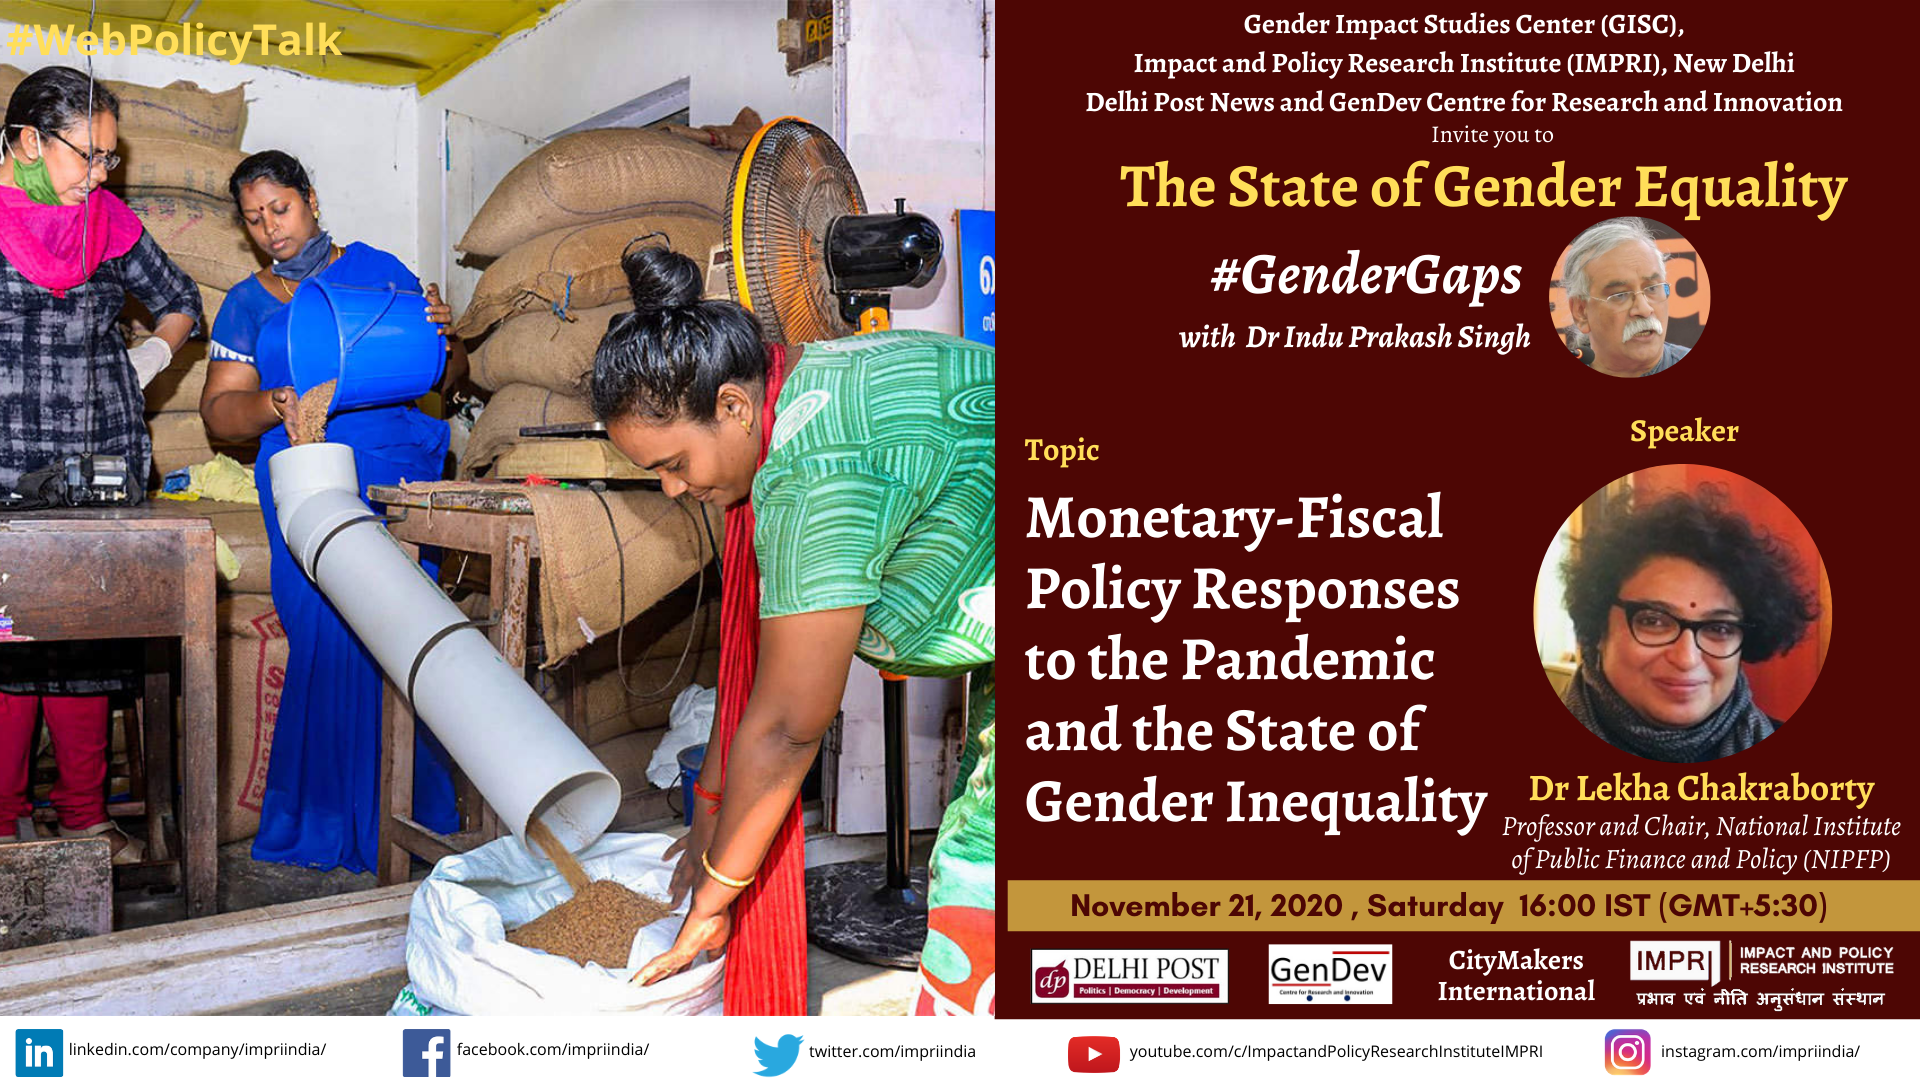 lekha chakraborty Monetary Fiscal Policy Responses to the Pandemic and the State of Gender Inequality 1